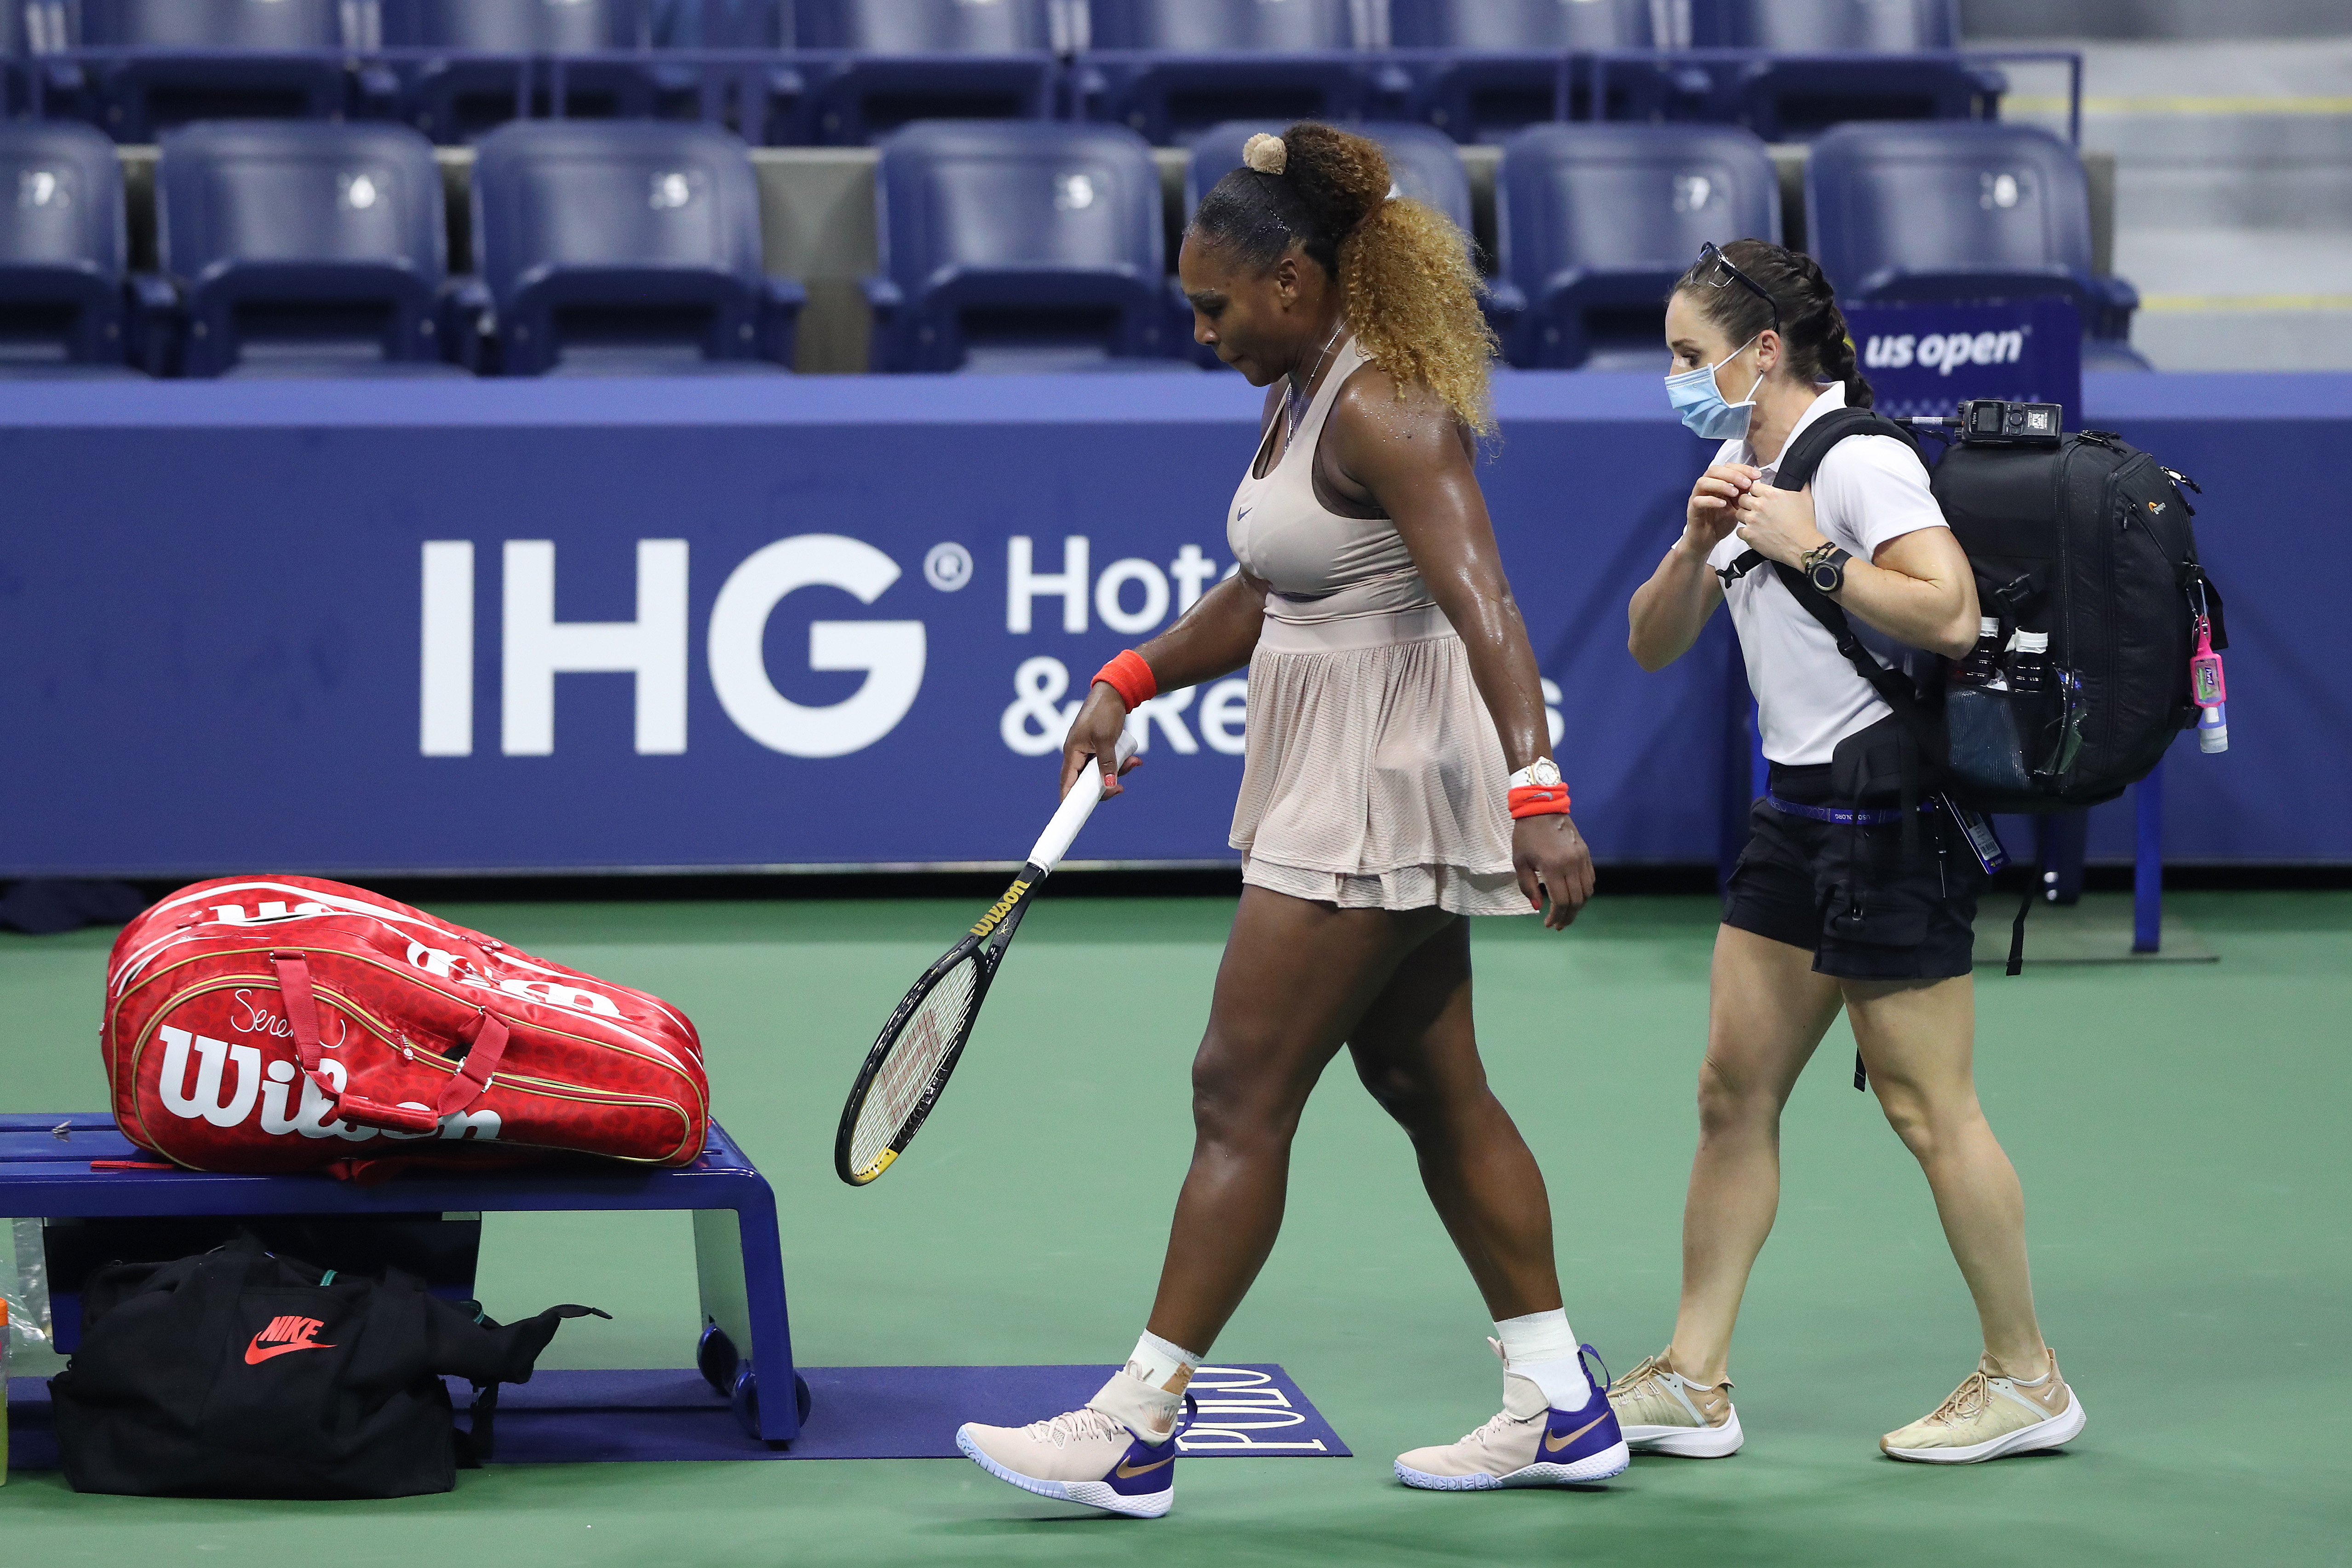 Serena Williams of the United States walks to her seat due to an injury in the third set during her Women's Singles semifinal match against Victoria Azarenka of Belarus on Day Eleven of the 2020 US Open at the USTA Billie Jean King National Tennis Center on September 10, 2020 in the Queens borough of New York City.